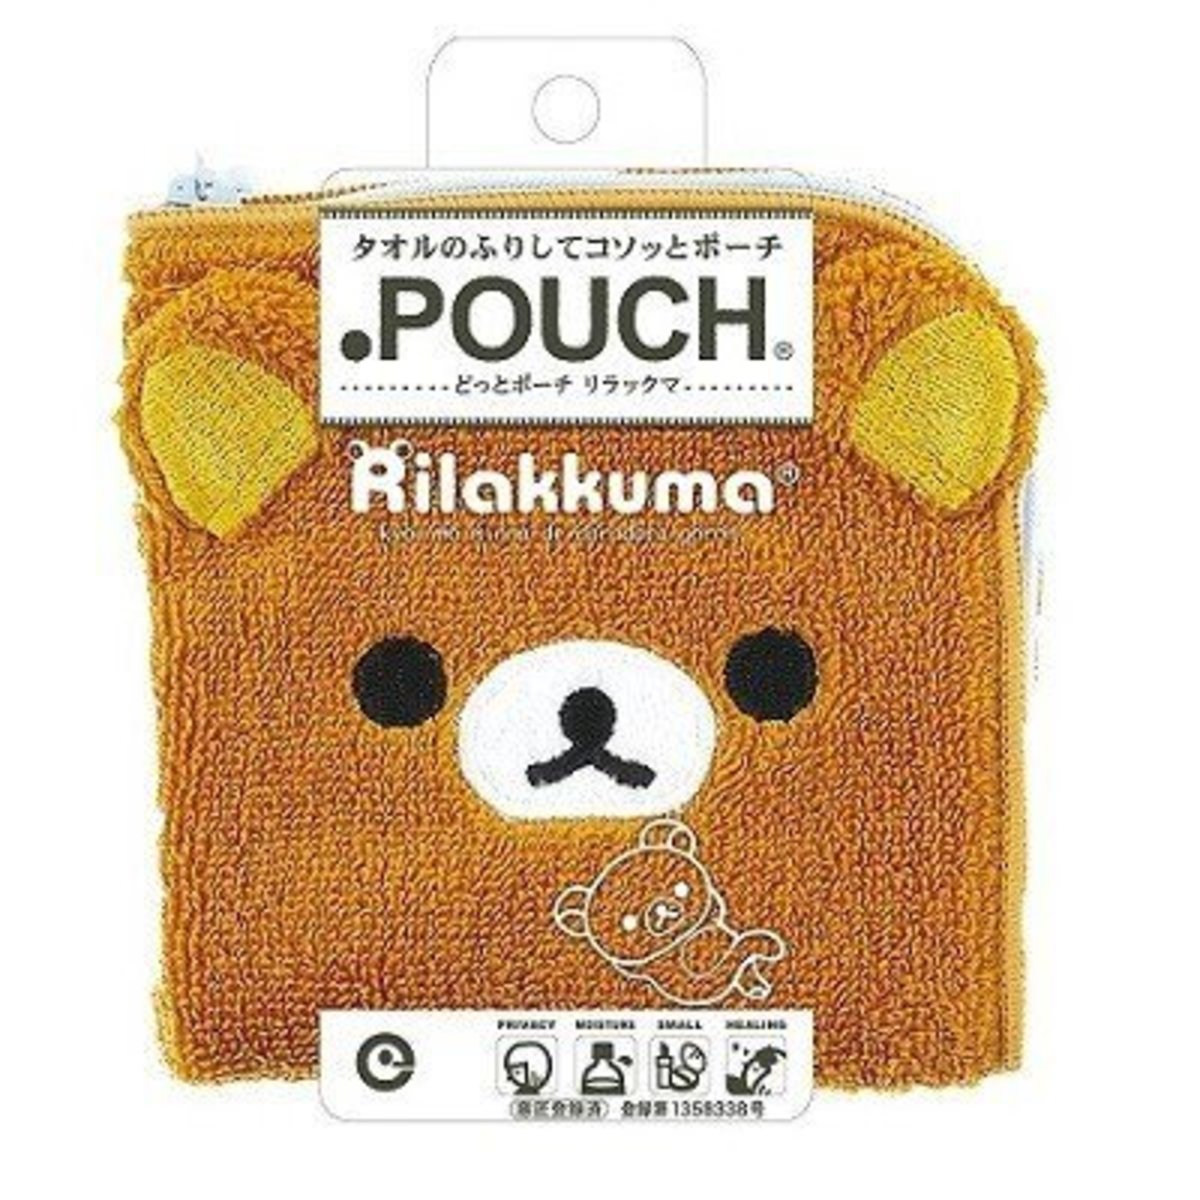 (Brown Rilakkuma) Japan Multi-function Towel Pouch for Umbrella/Water Bottle